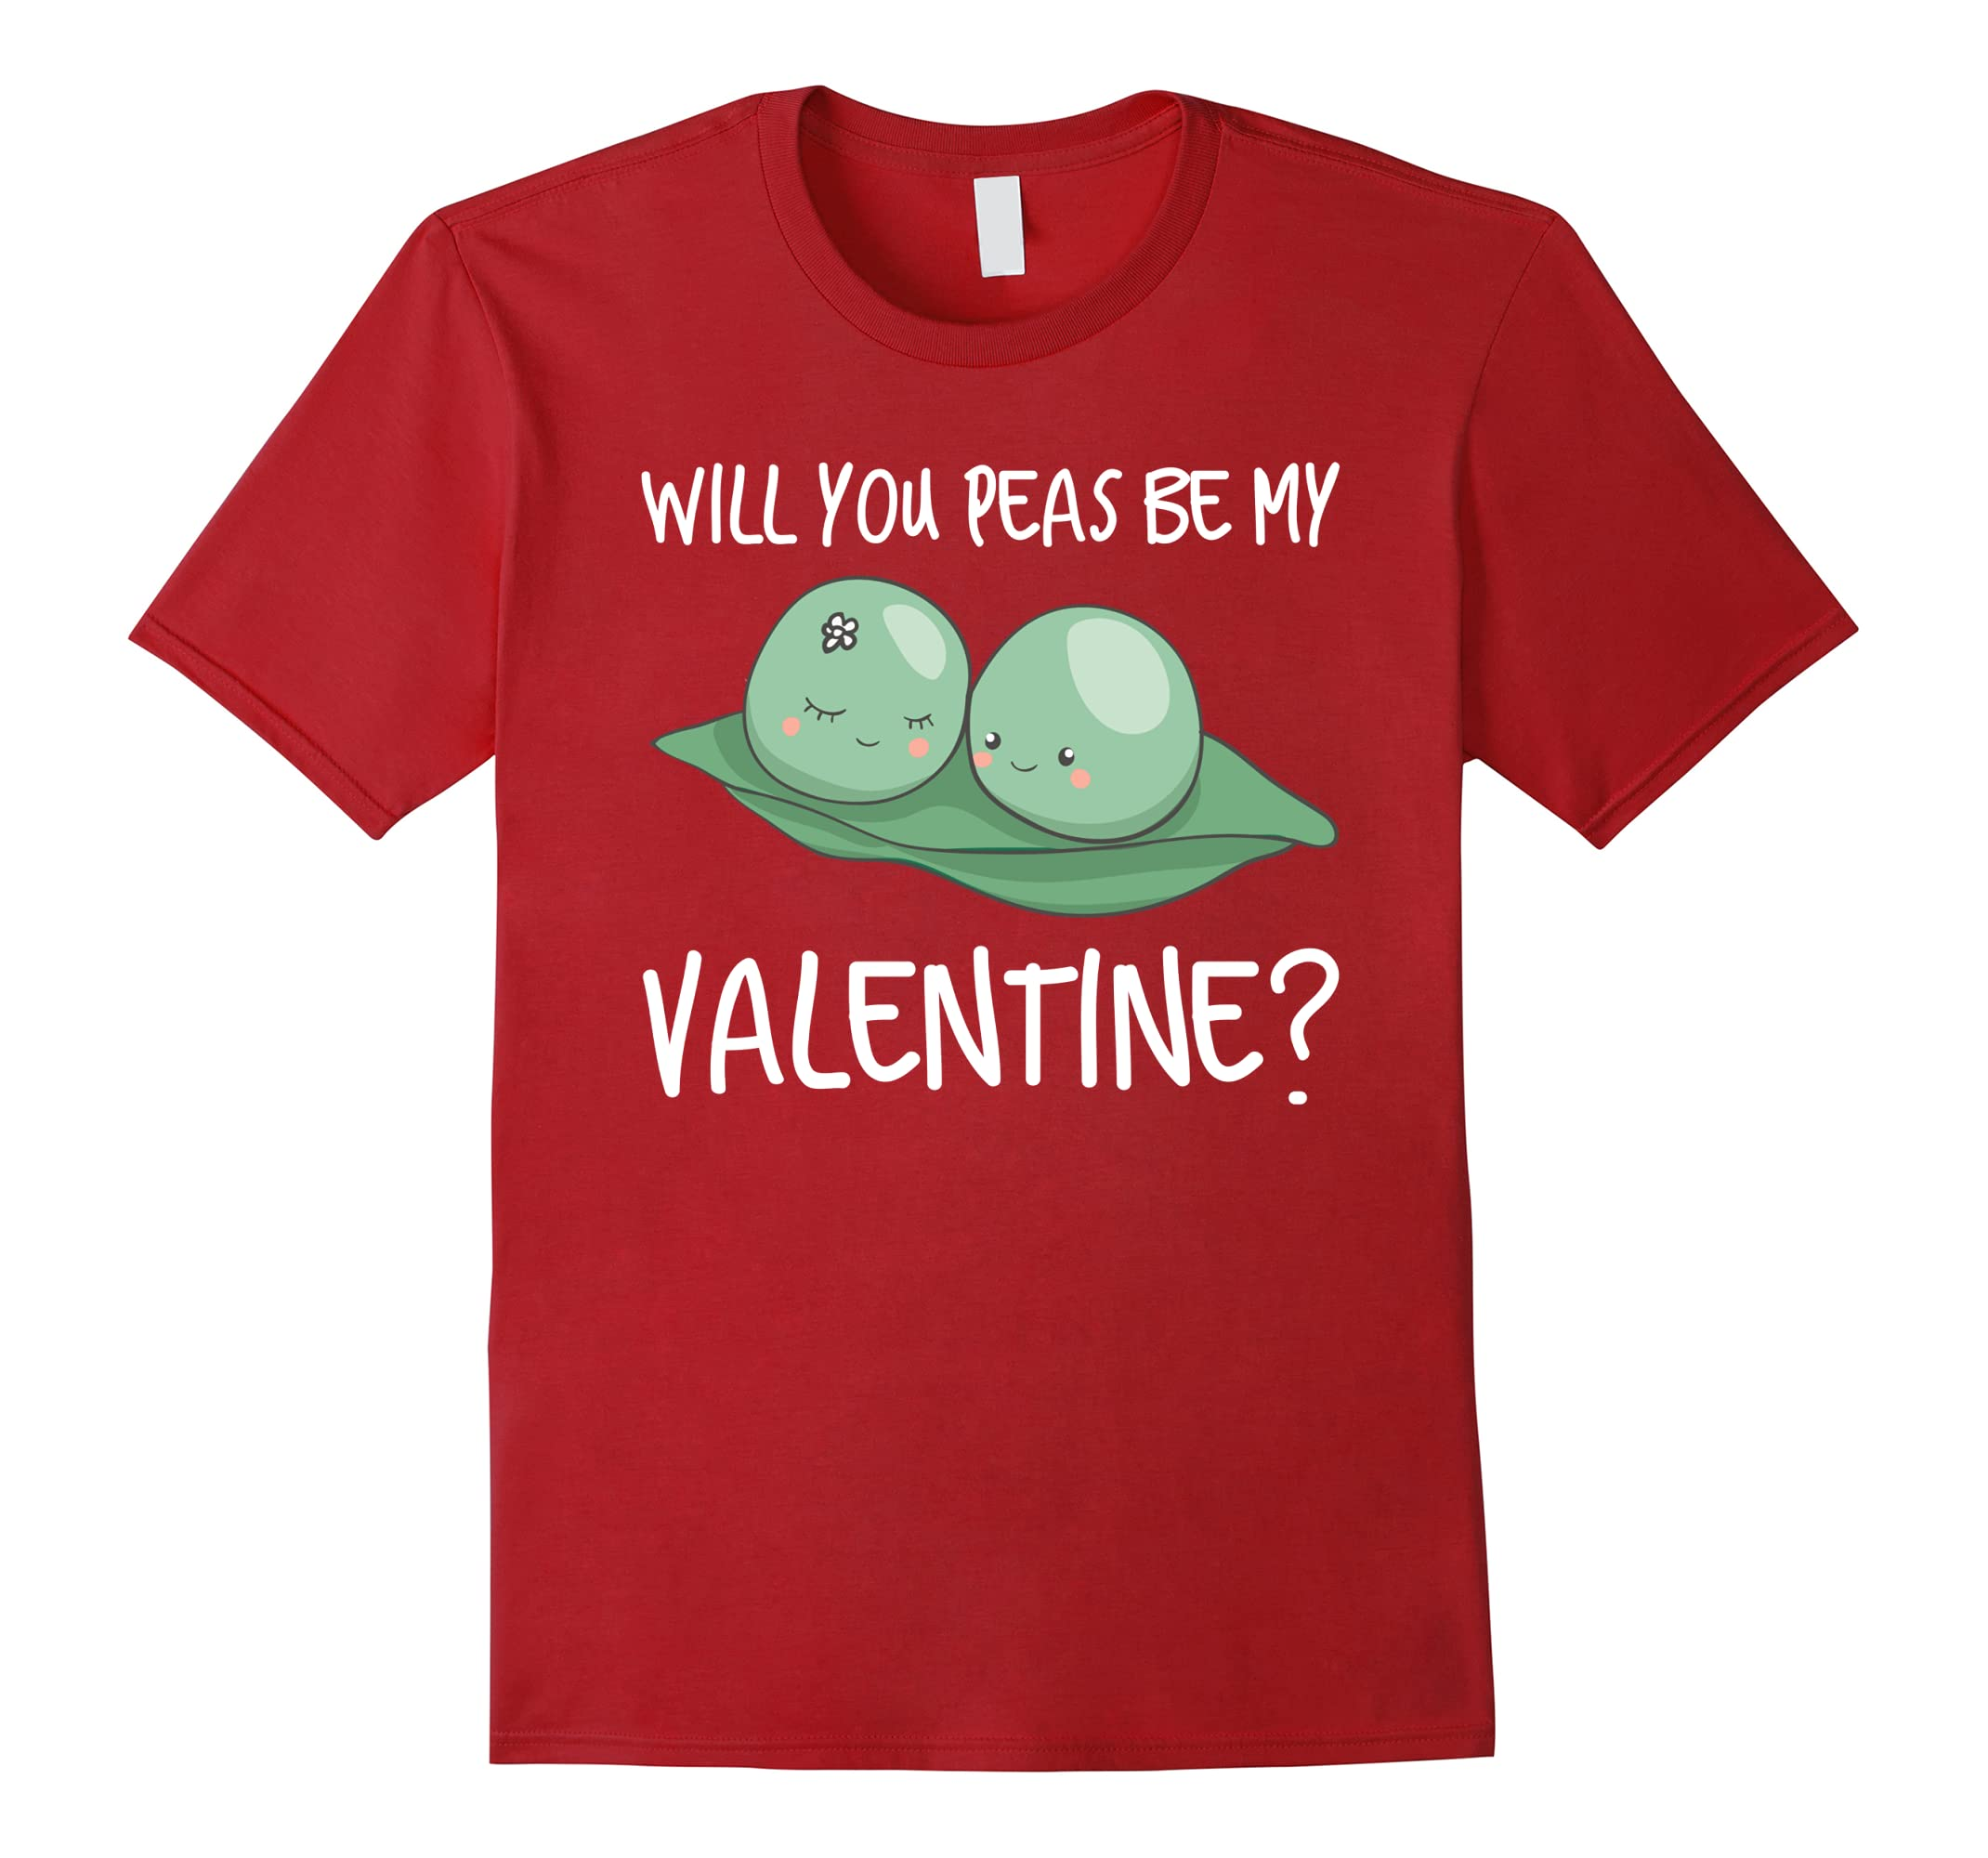 Funny Valentines Shirts For Boys Girls   Valentine Gifts